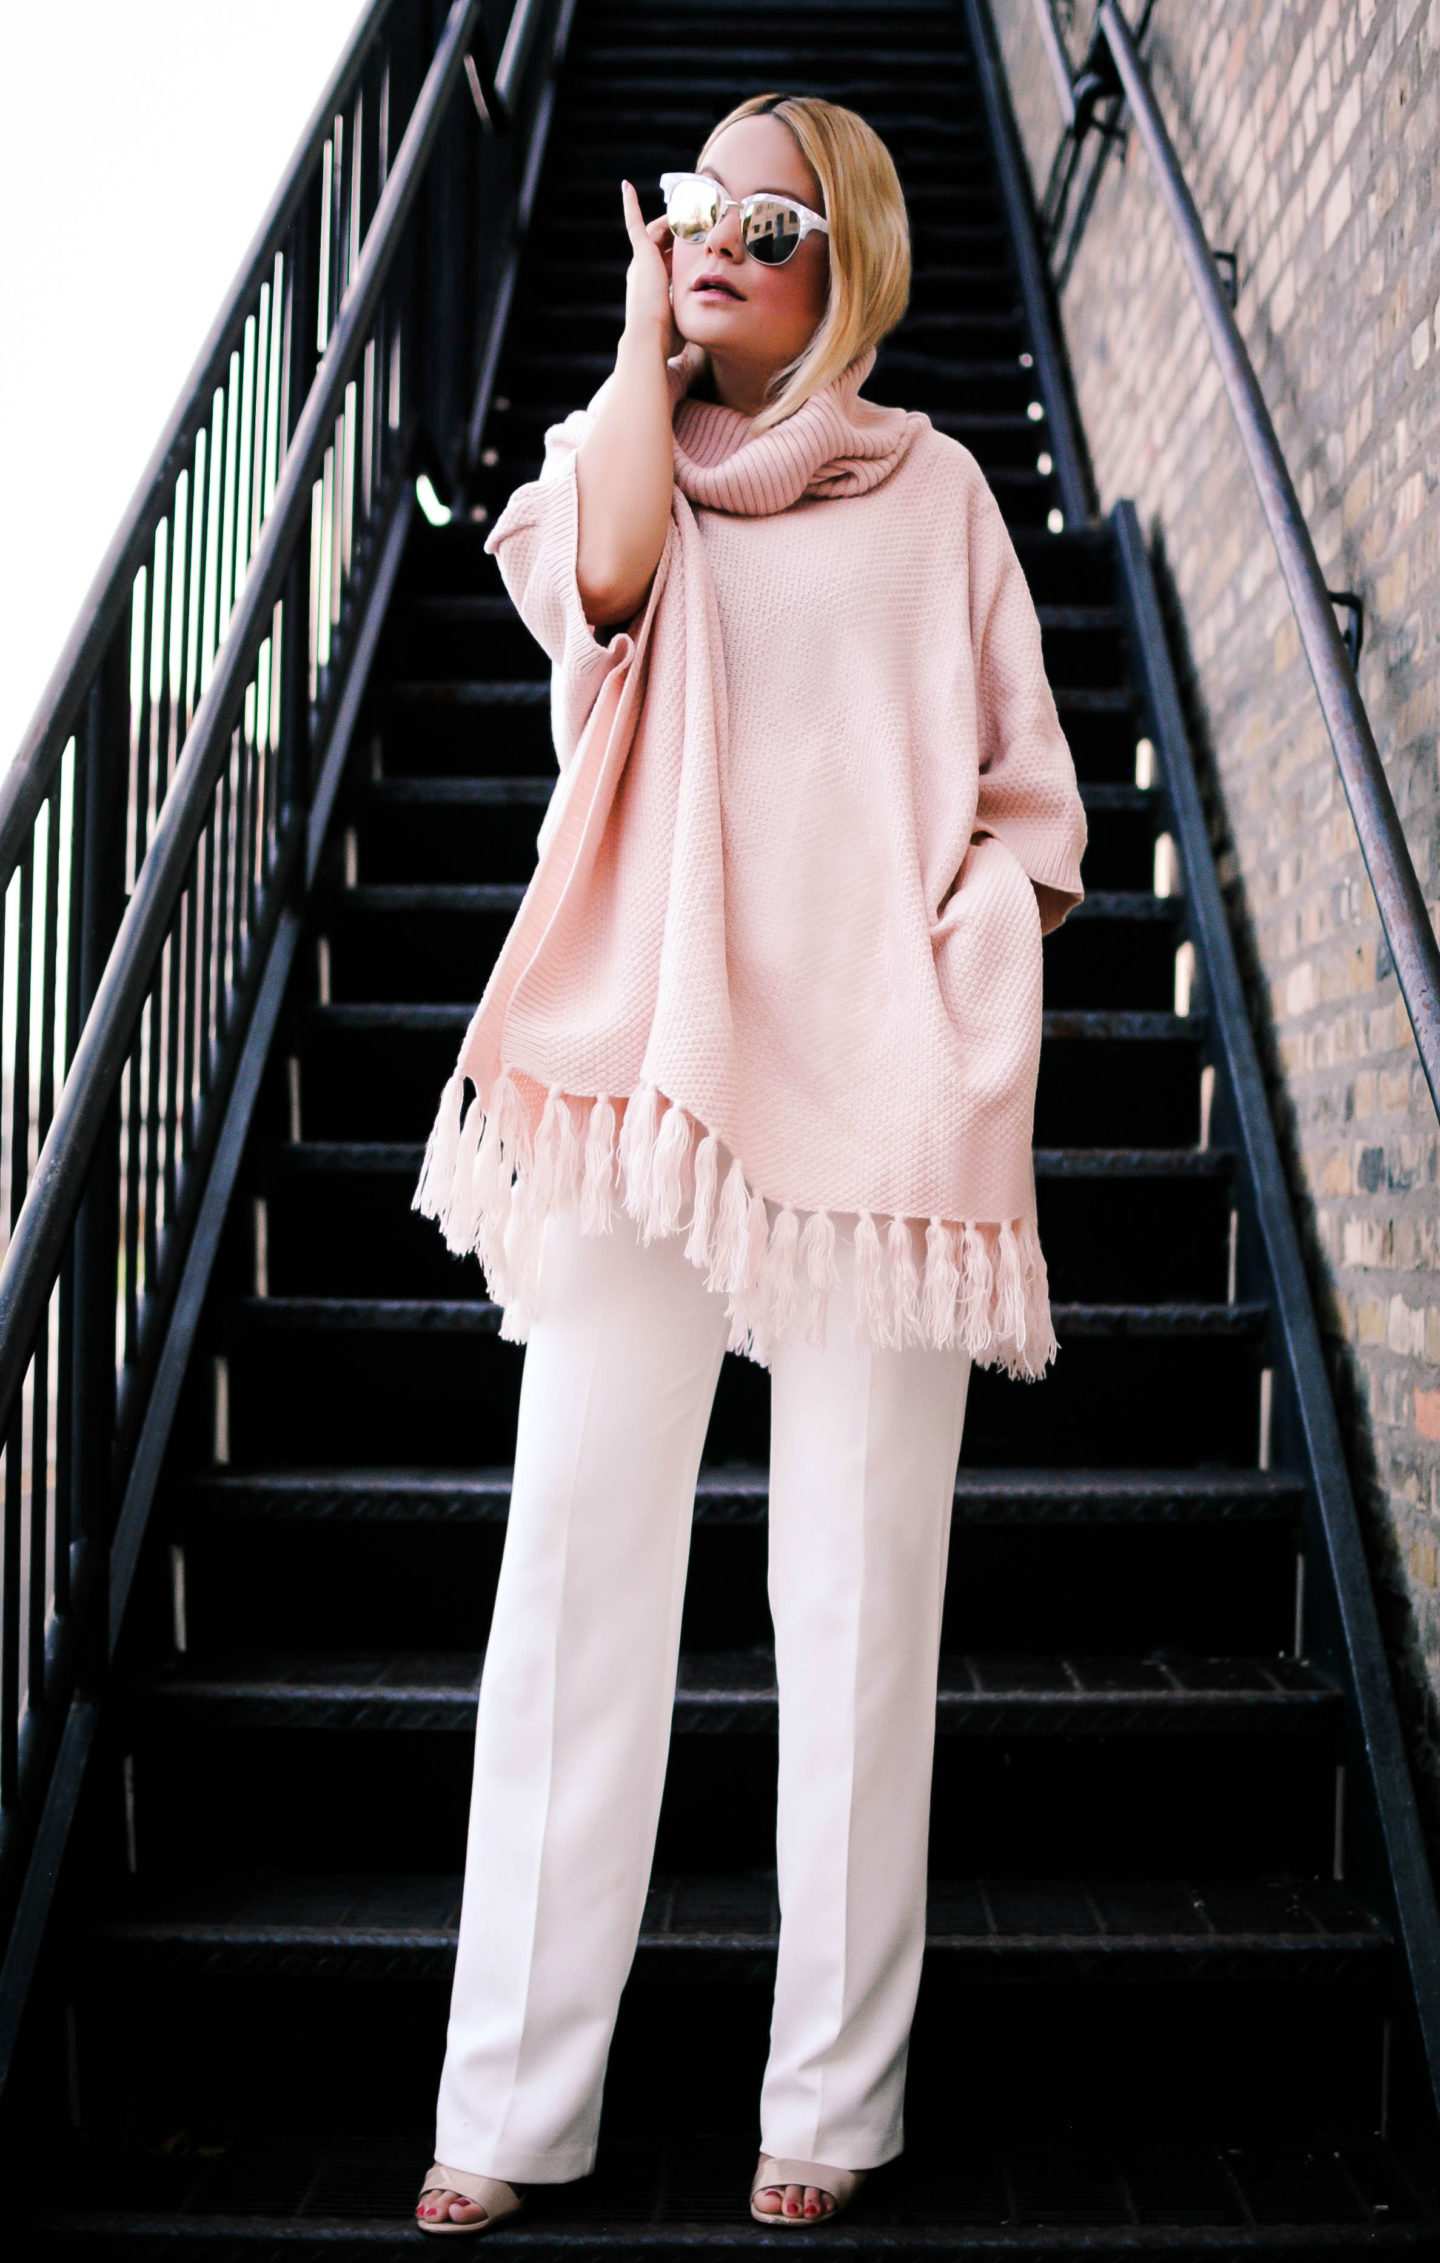 white-wideleg-pants-r-pink-light-sweater-poncho-sun-tan-shoe-sandalh-vanessalambert-howtowear-fashion-style-outfit-fall-winter-blonde-lunch.jpg